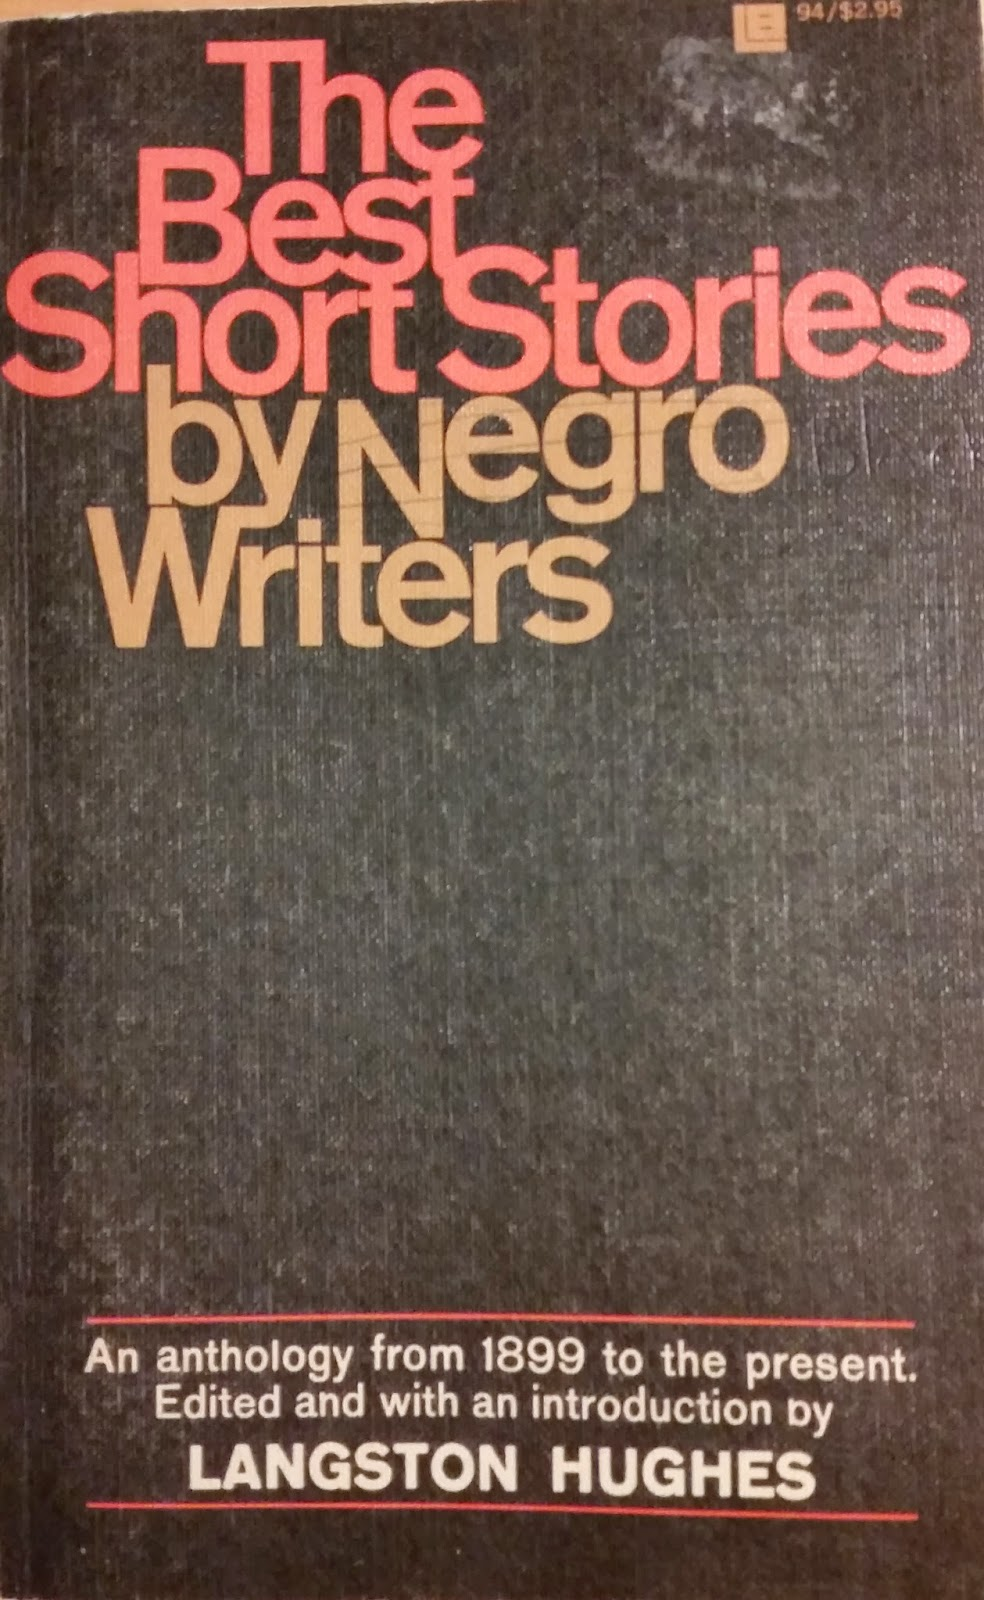 Book cover to The Best Short Stories by Negro Writers - Langston Hughes.